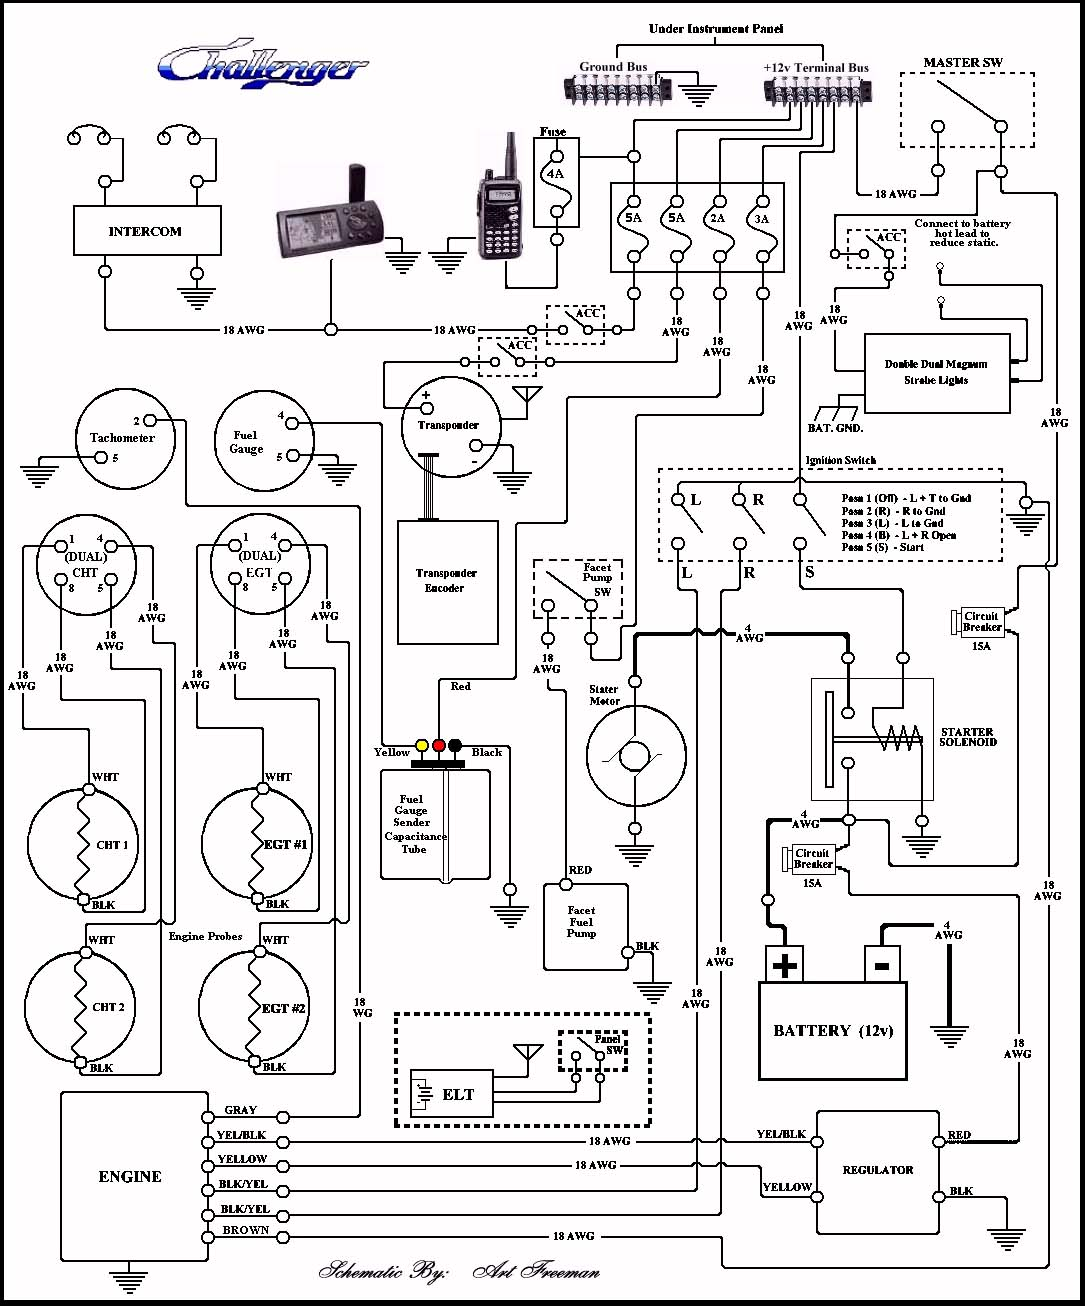 Erie Airpark Tools Downloads Set 3 Light Wire Schematic Challenger Ii Wiring Analog This Was Created For An Instrument Panel Not Digital Also Has A Transponder Encoder Up